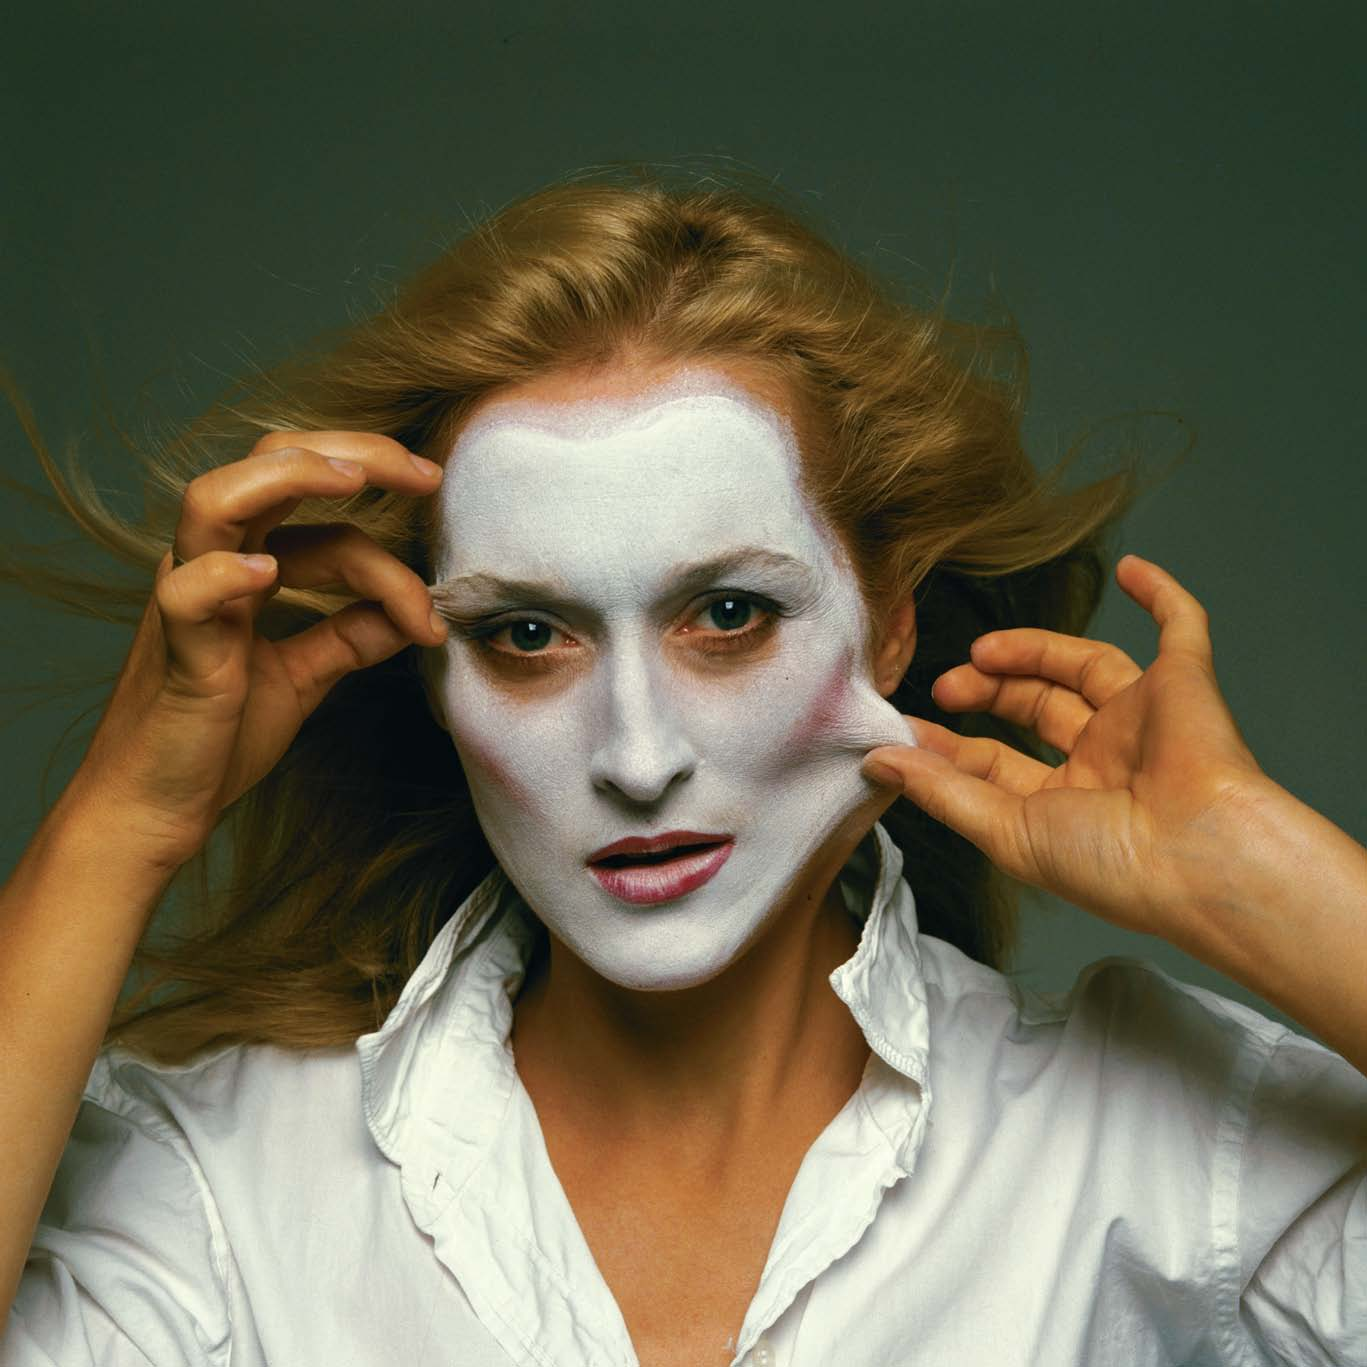 Meryl Streep' by Annie Leibovitz in 1981.